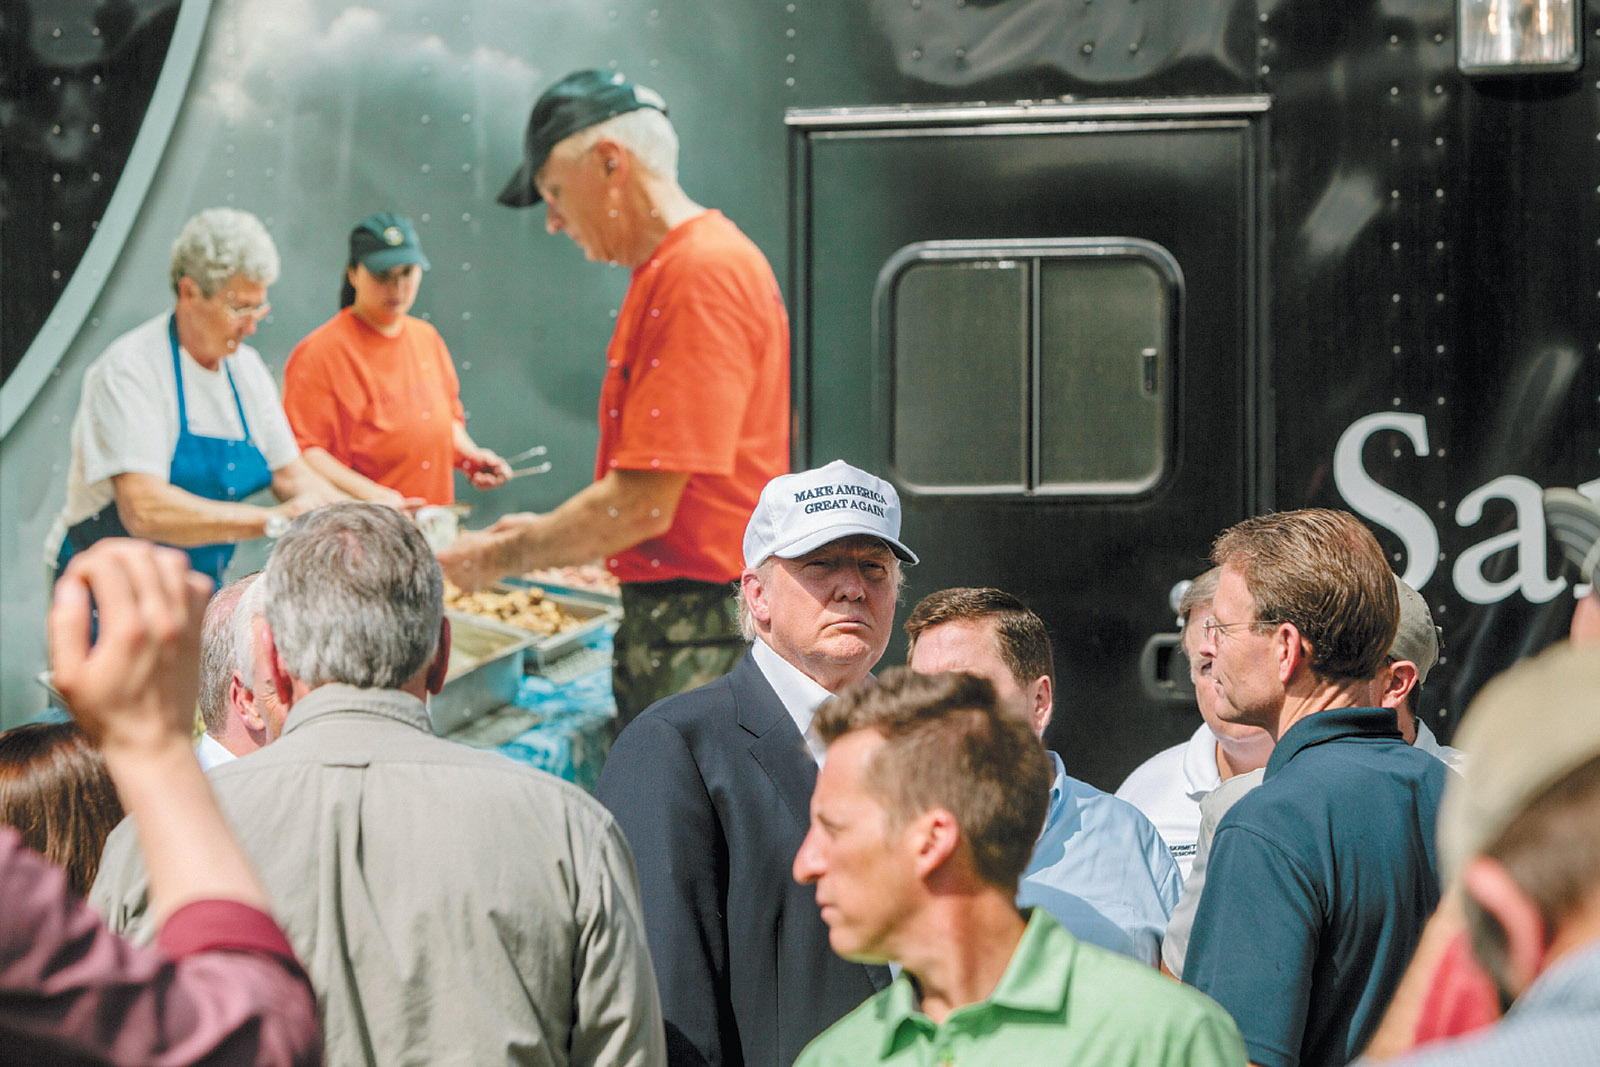 Donald Trump in front of the Samaritan's Purse mobile kitchen at an event for flood victims, Greenwell Springs Baptist Church, near Baton Rouge, Louisiana, August 2016